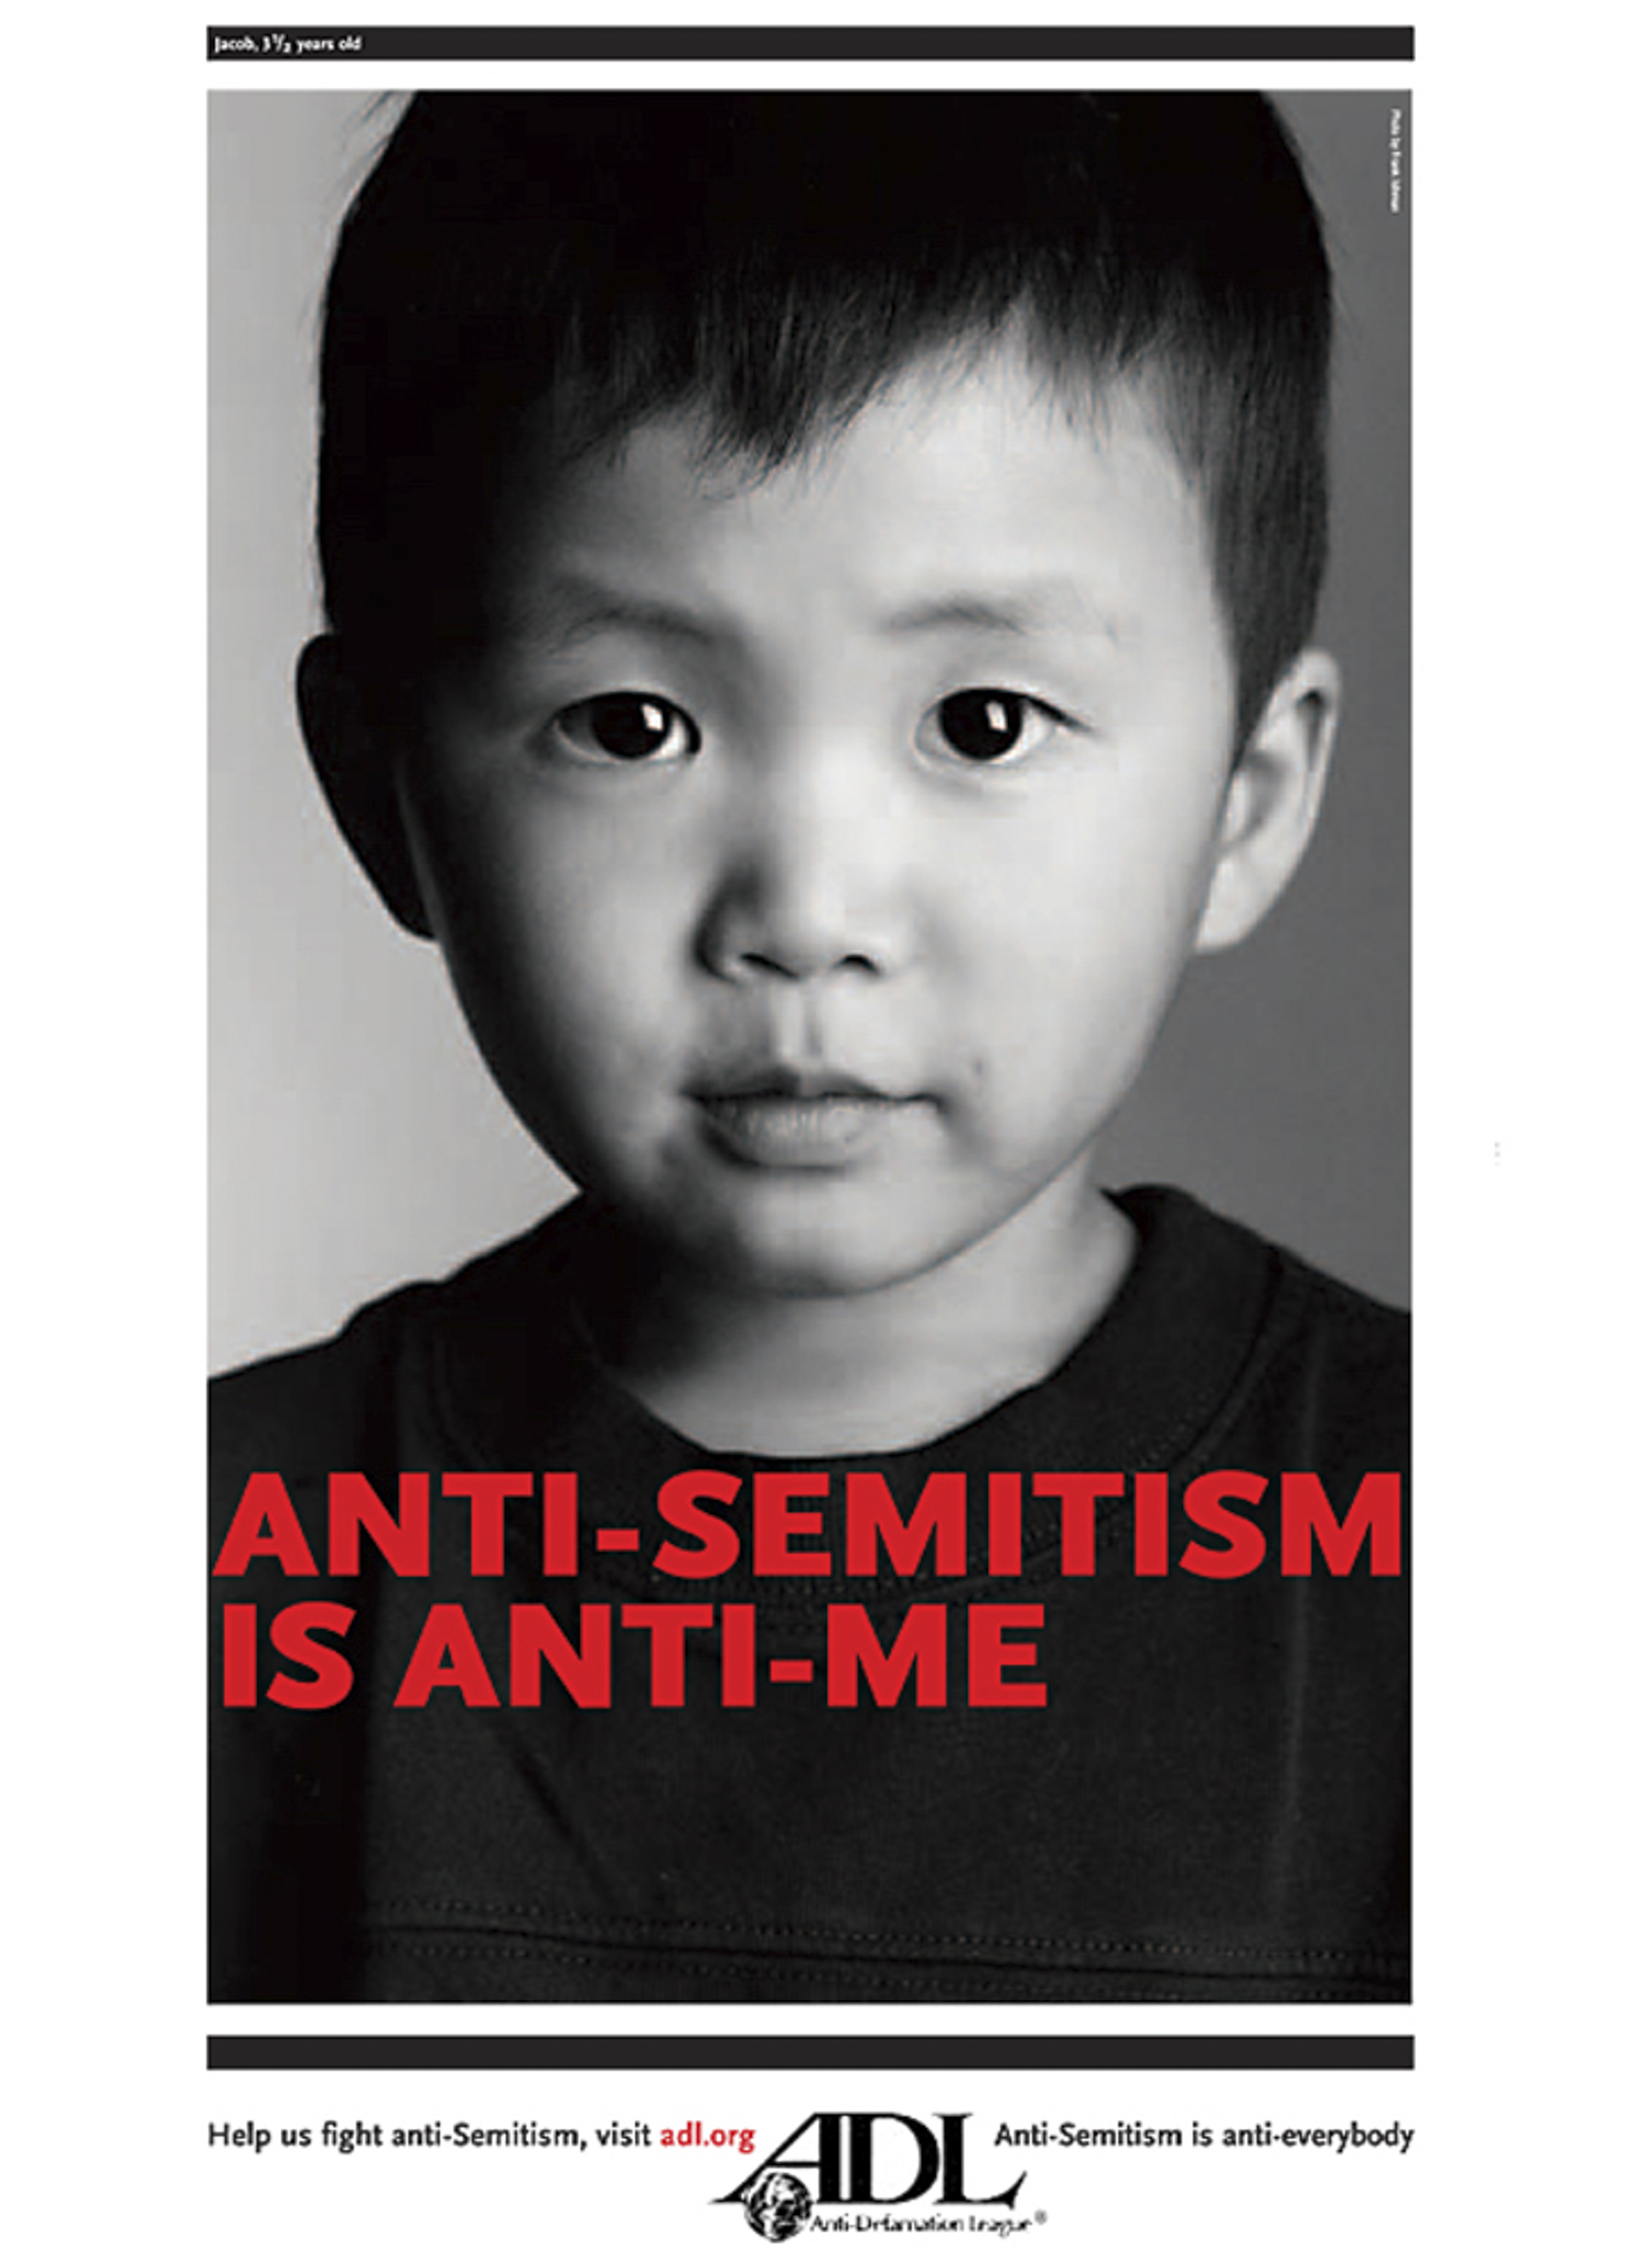 Anti-Semitism is Anti-Me Poster Campaign - Jacob 3 1/2